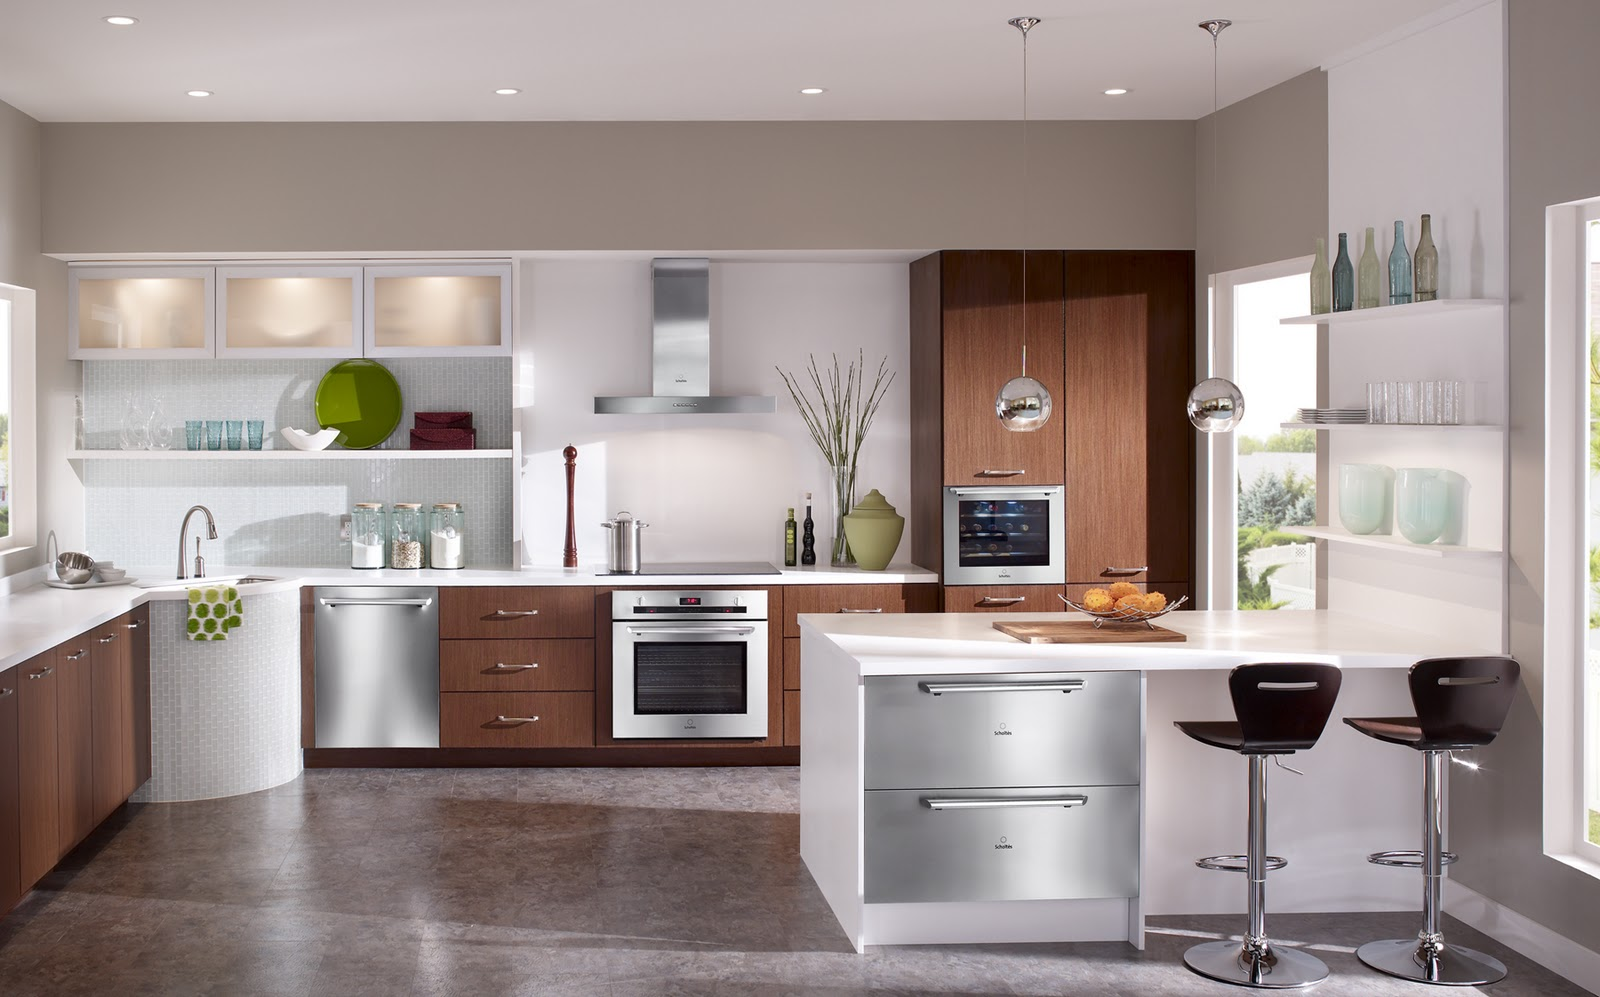 New Kitchen Appliances Light Fixture Ideas Living In Your Design Trends Aston Smith